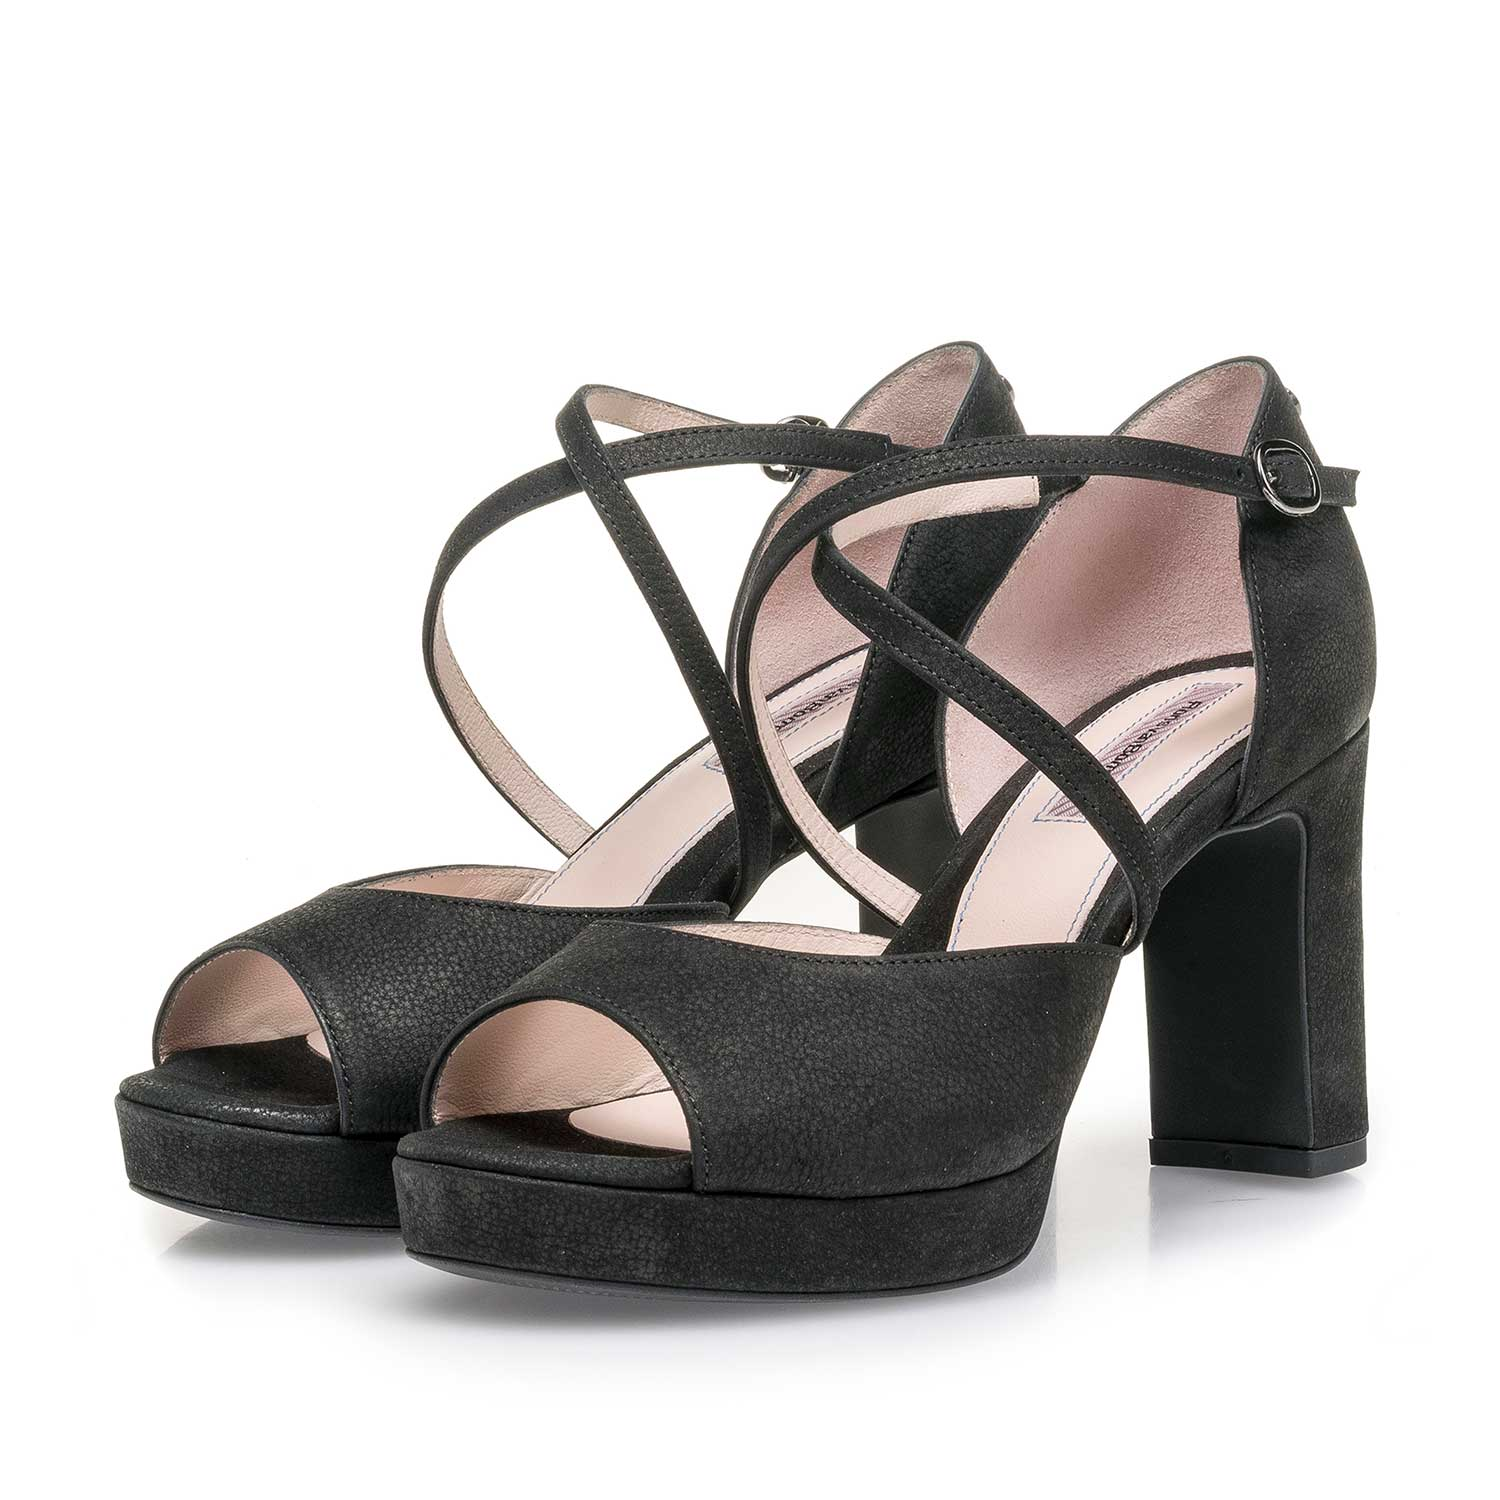 a658aad01da Black leather high-heeled sandal 85903/02 | Floris van Bommel®